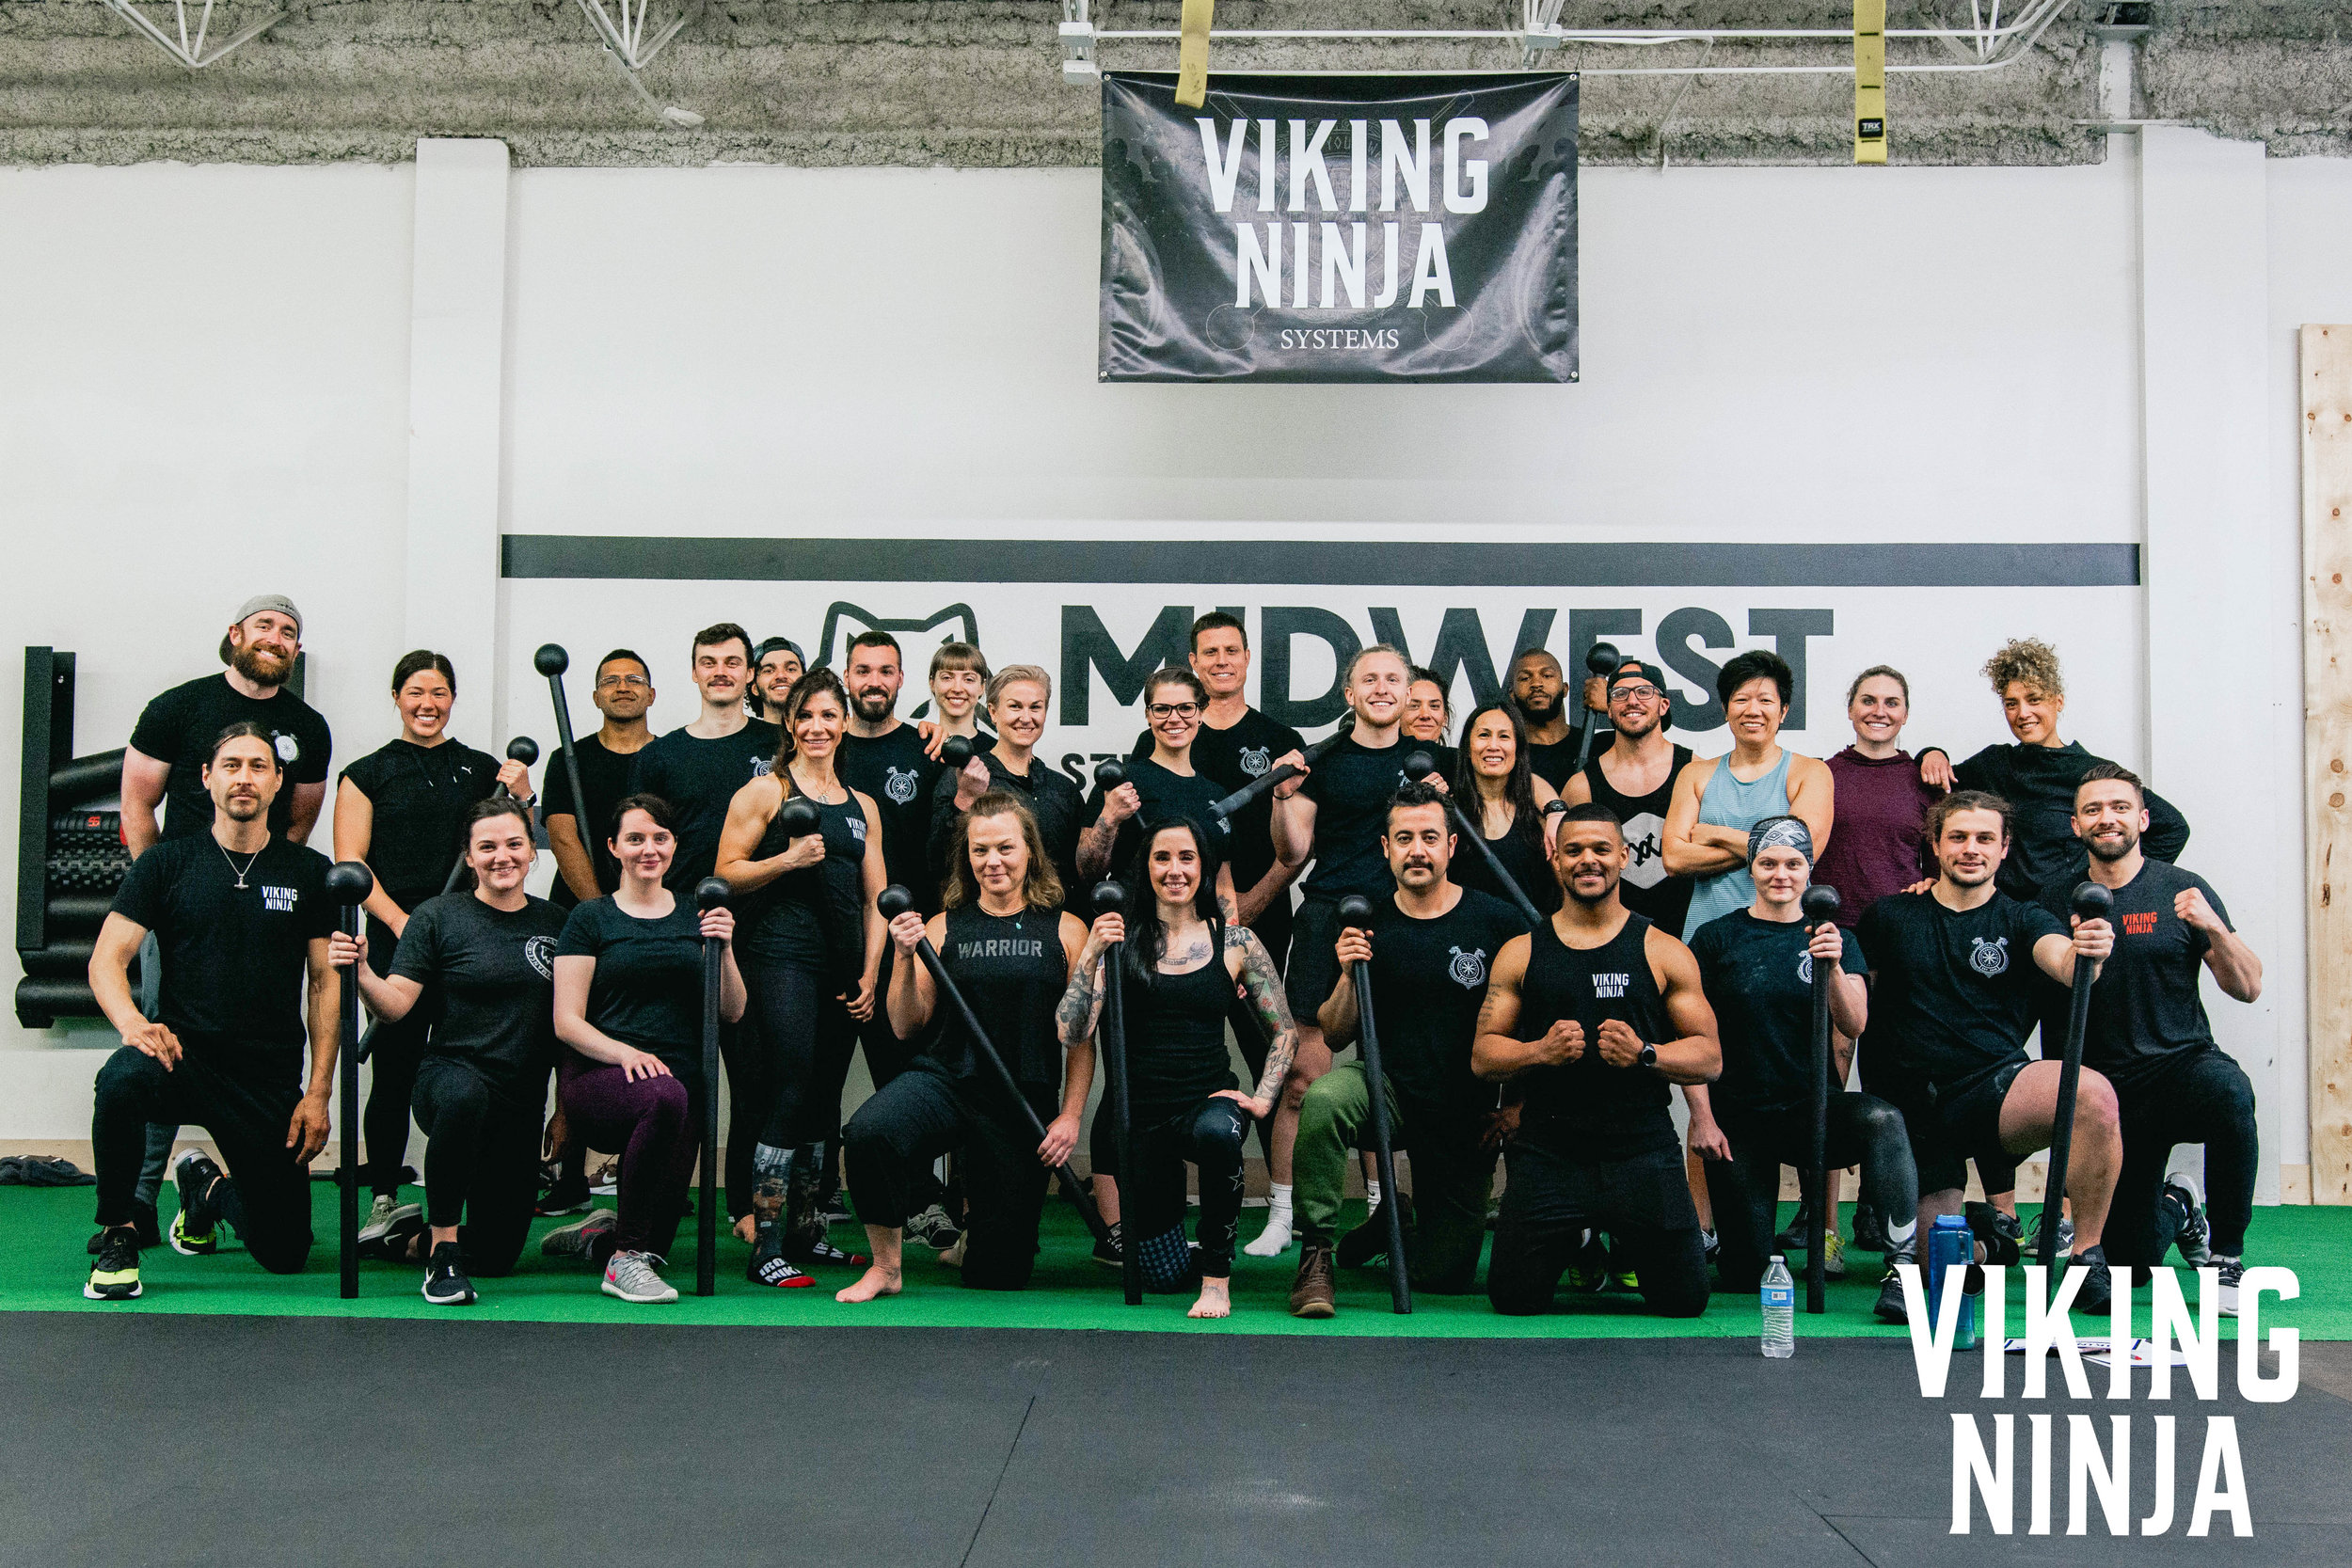 Viking Ninja Fitness Training System Chicago and Viking Ninja Women Community